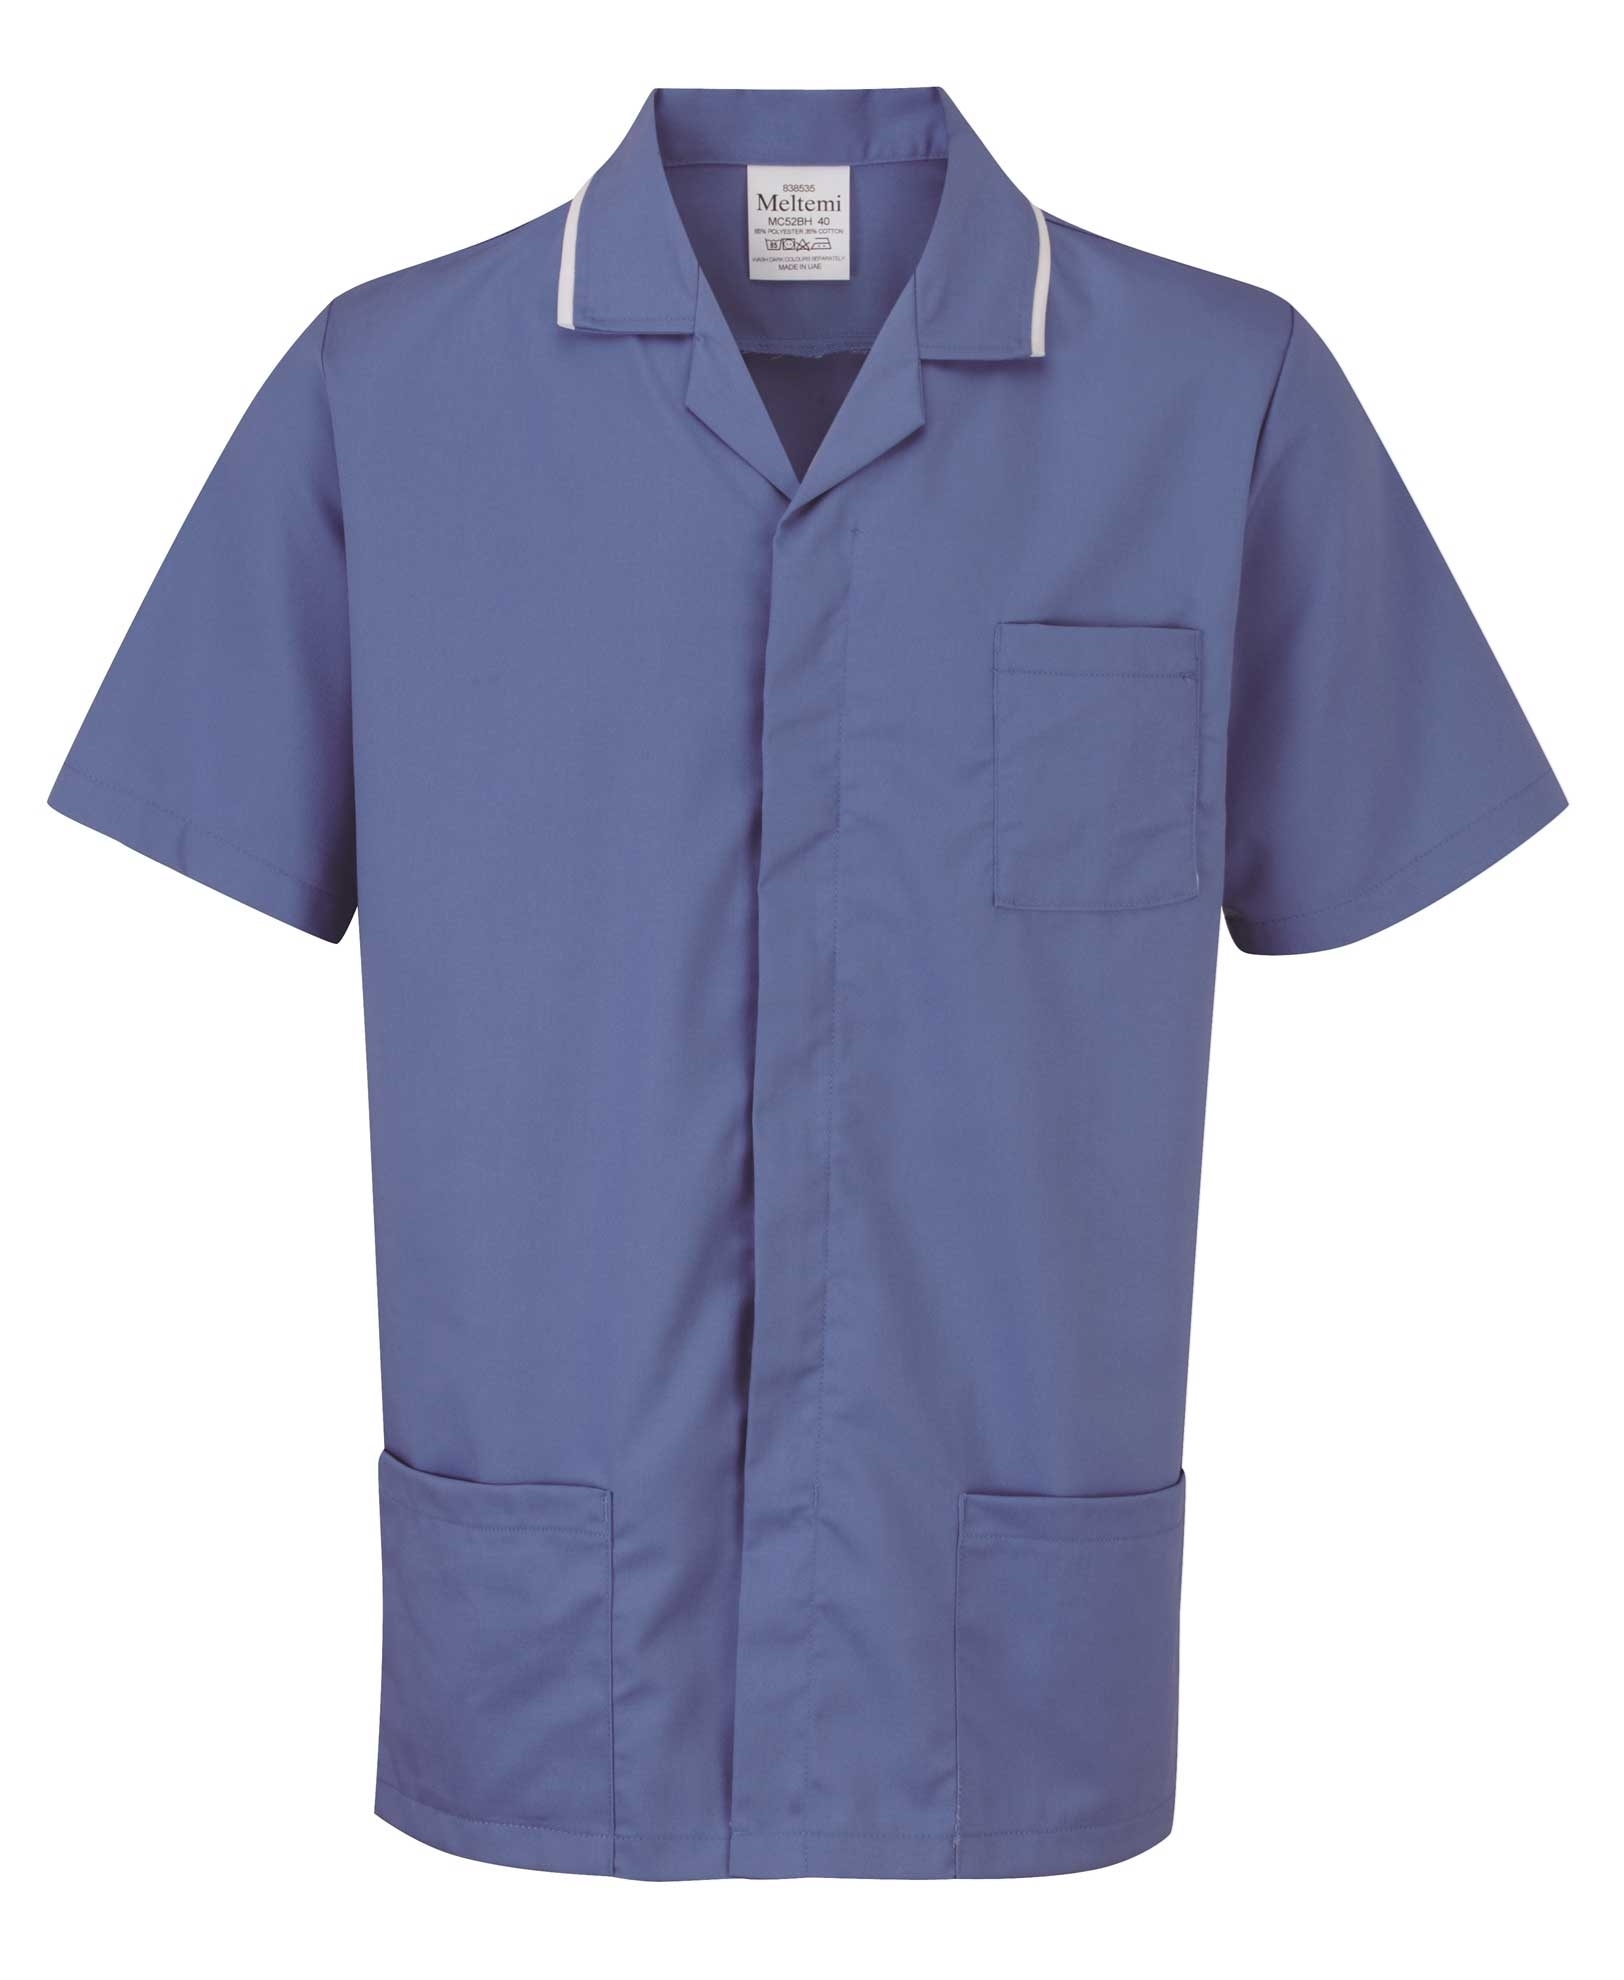 Picture of Advantage Front Fastening Tunic - Hospital Blue/White